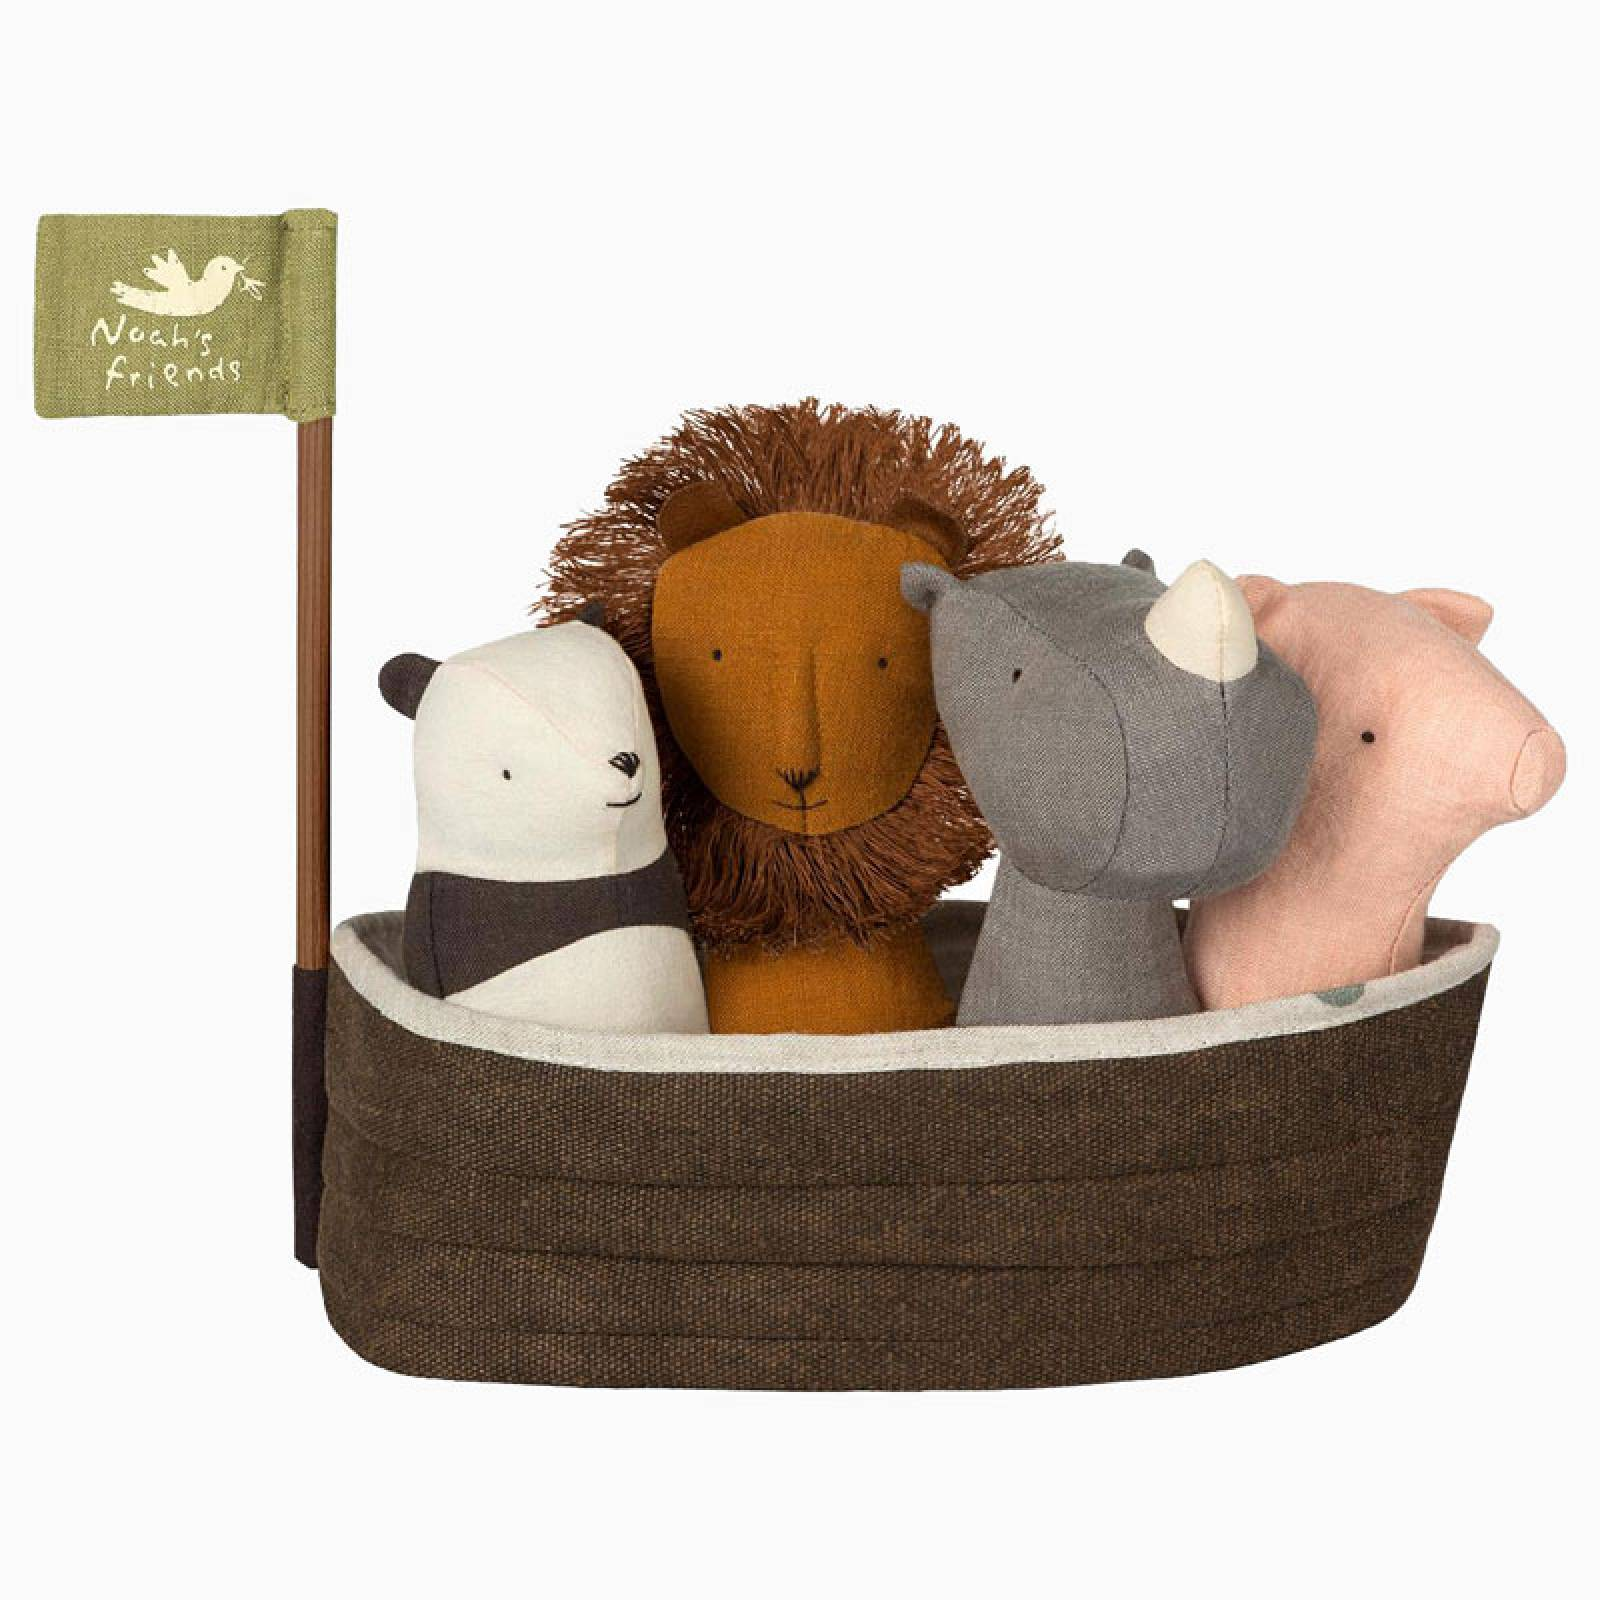 Noah's Ark With Soft Toy Rattles By Maileg 0+